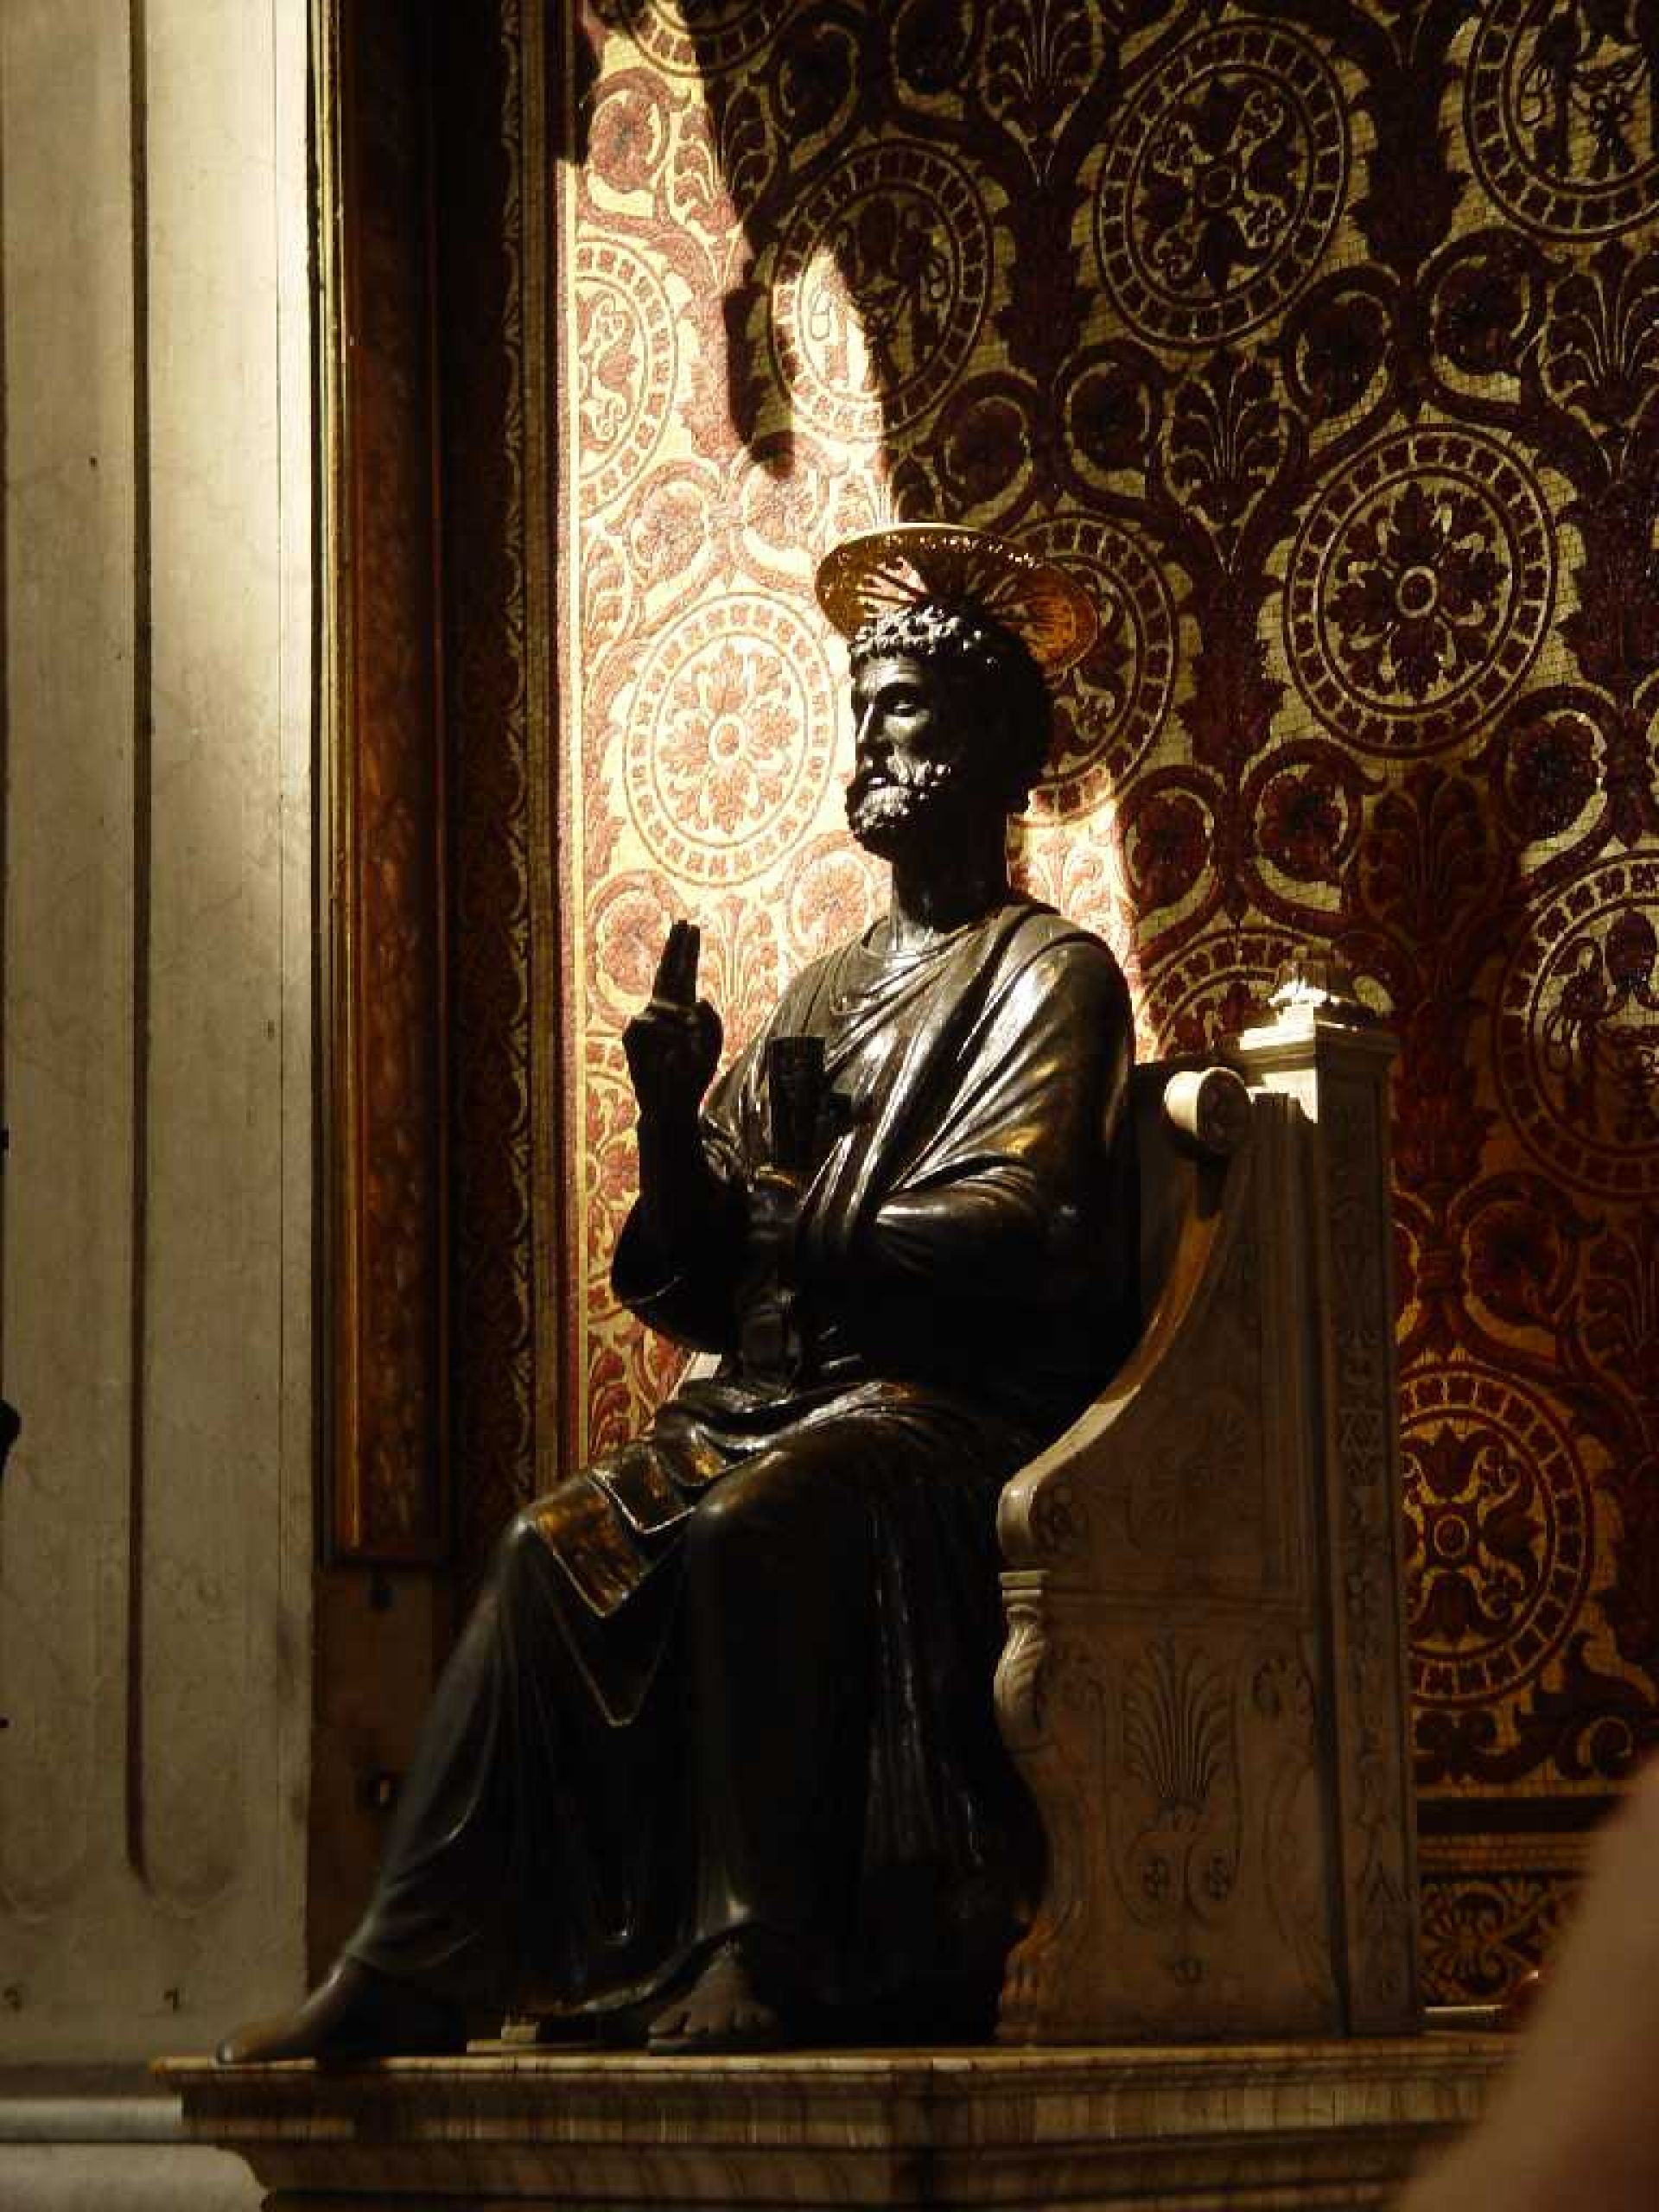 vatican, san pedro, basilica, peter, statue, san, bronze,  santidad, holy, apostle, student, first dad, kefas